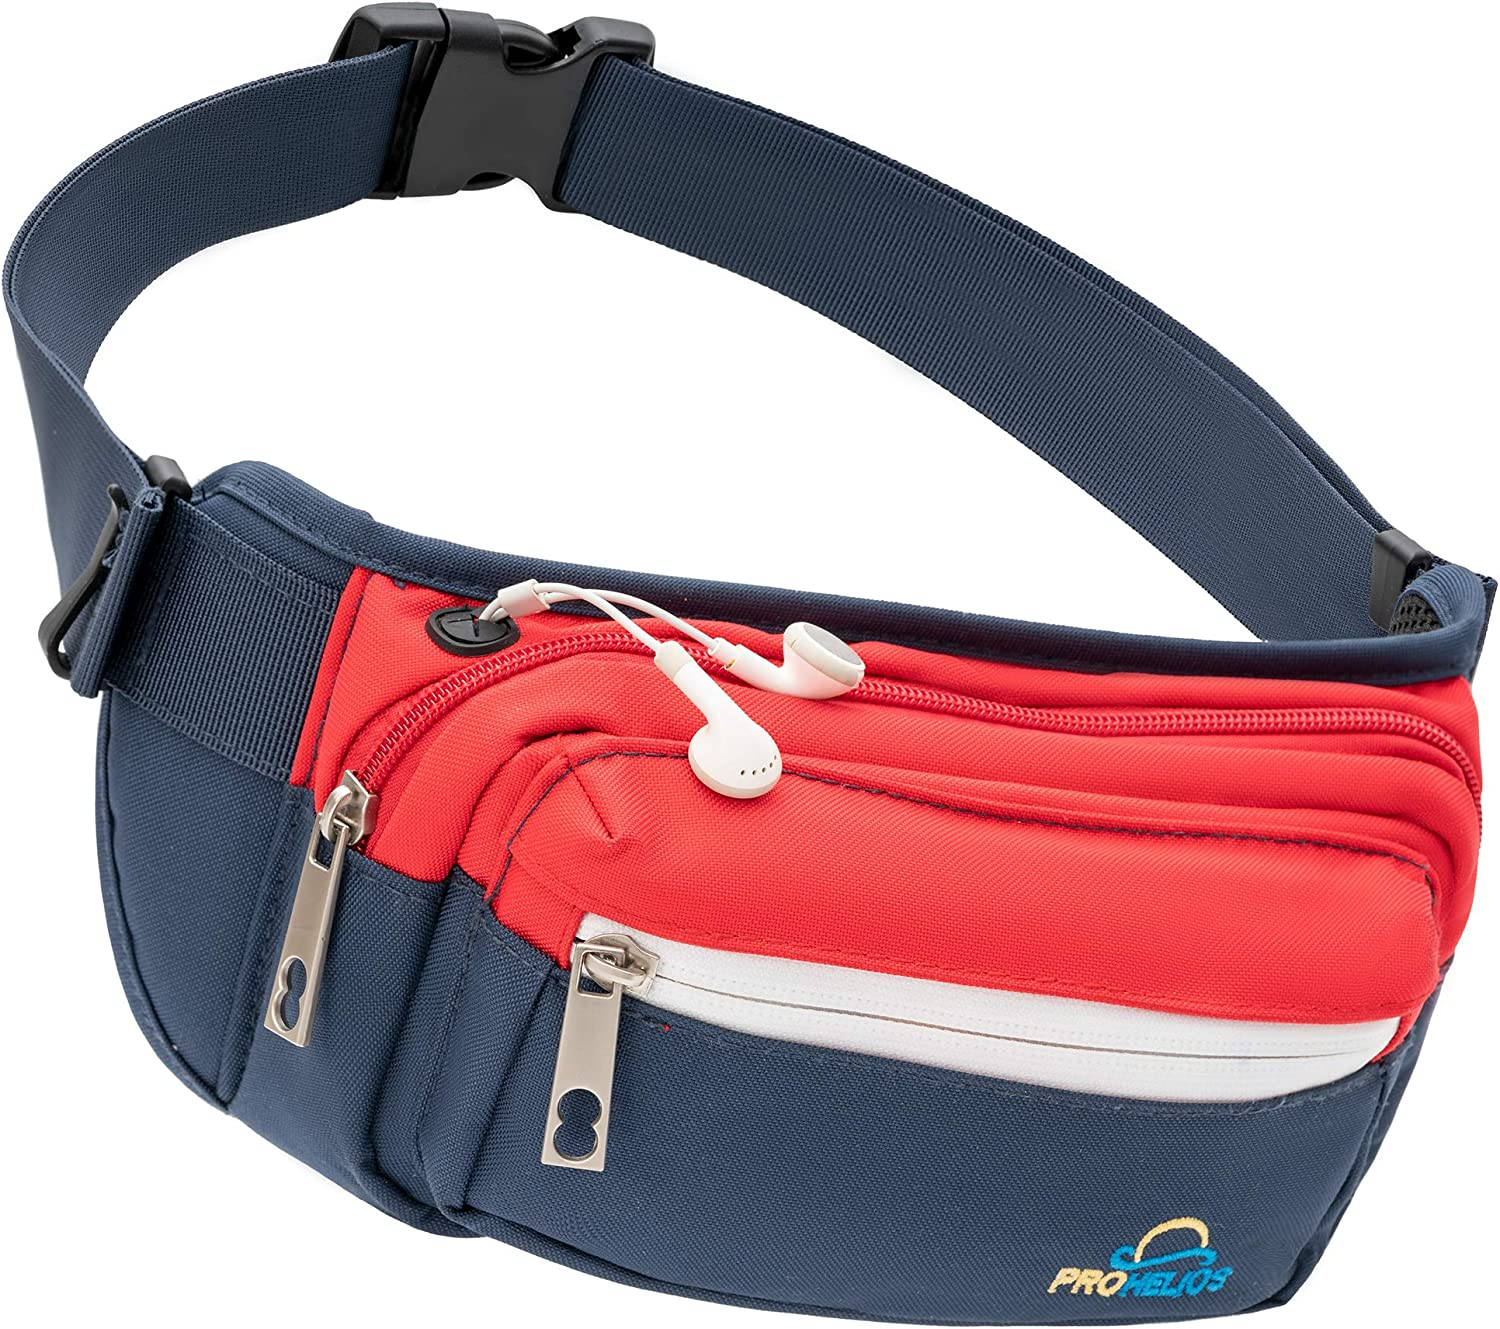 Pro Helios Premium Fanny Packs for Men & Women Water Resistant Waist Bag for Outdoor Activities, Traveling, Hiking, Biking, Running & More | Fannie Pack for Women